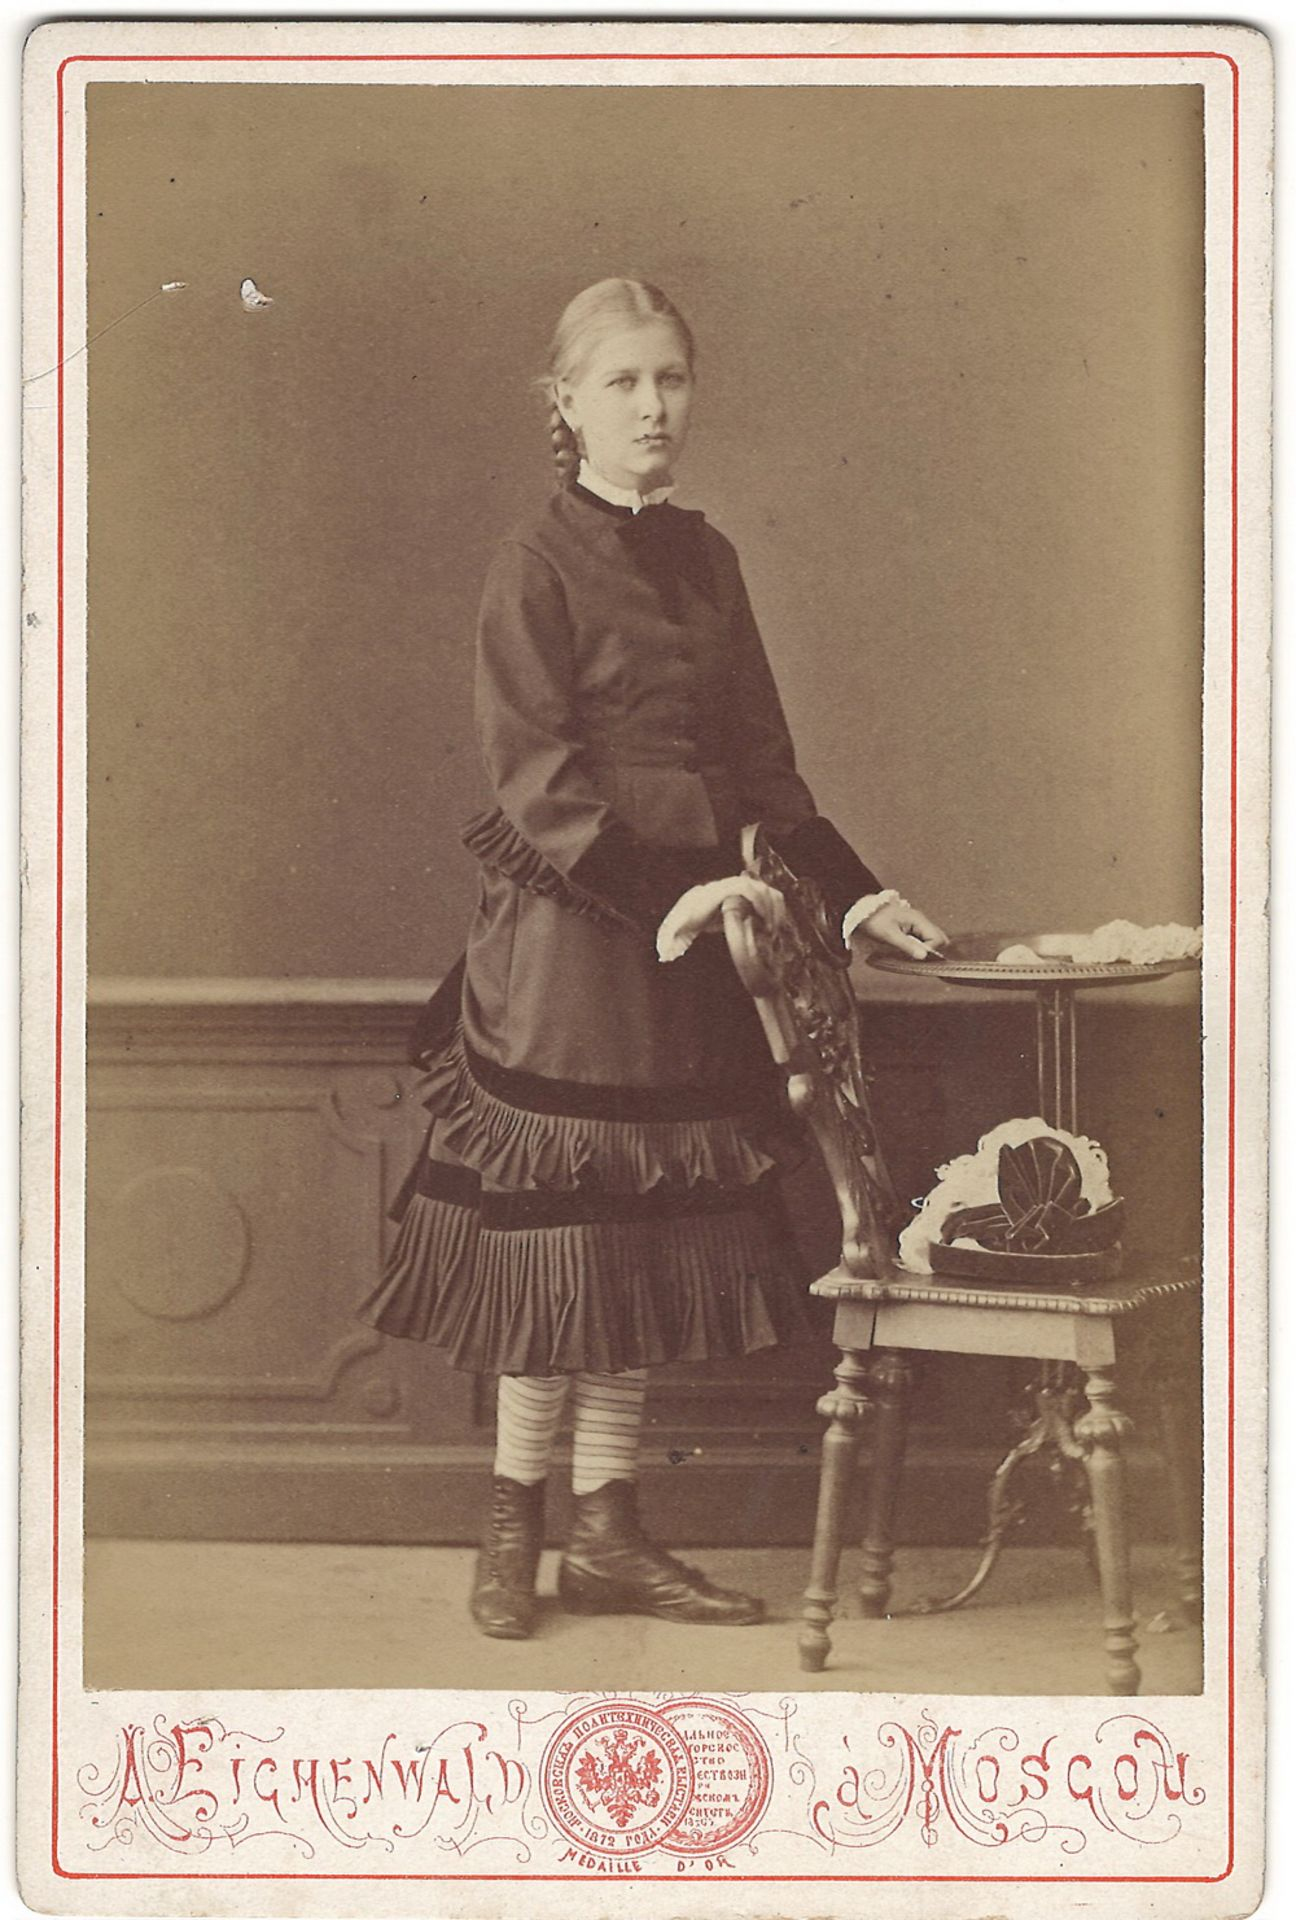 [Russian Empire]. Eichenwald, A. Cabinet portrait of a woman. Photograph. Author's print. Moscow, [1